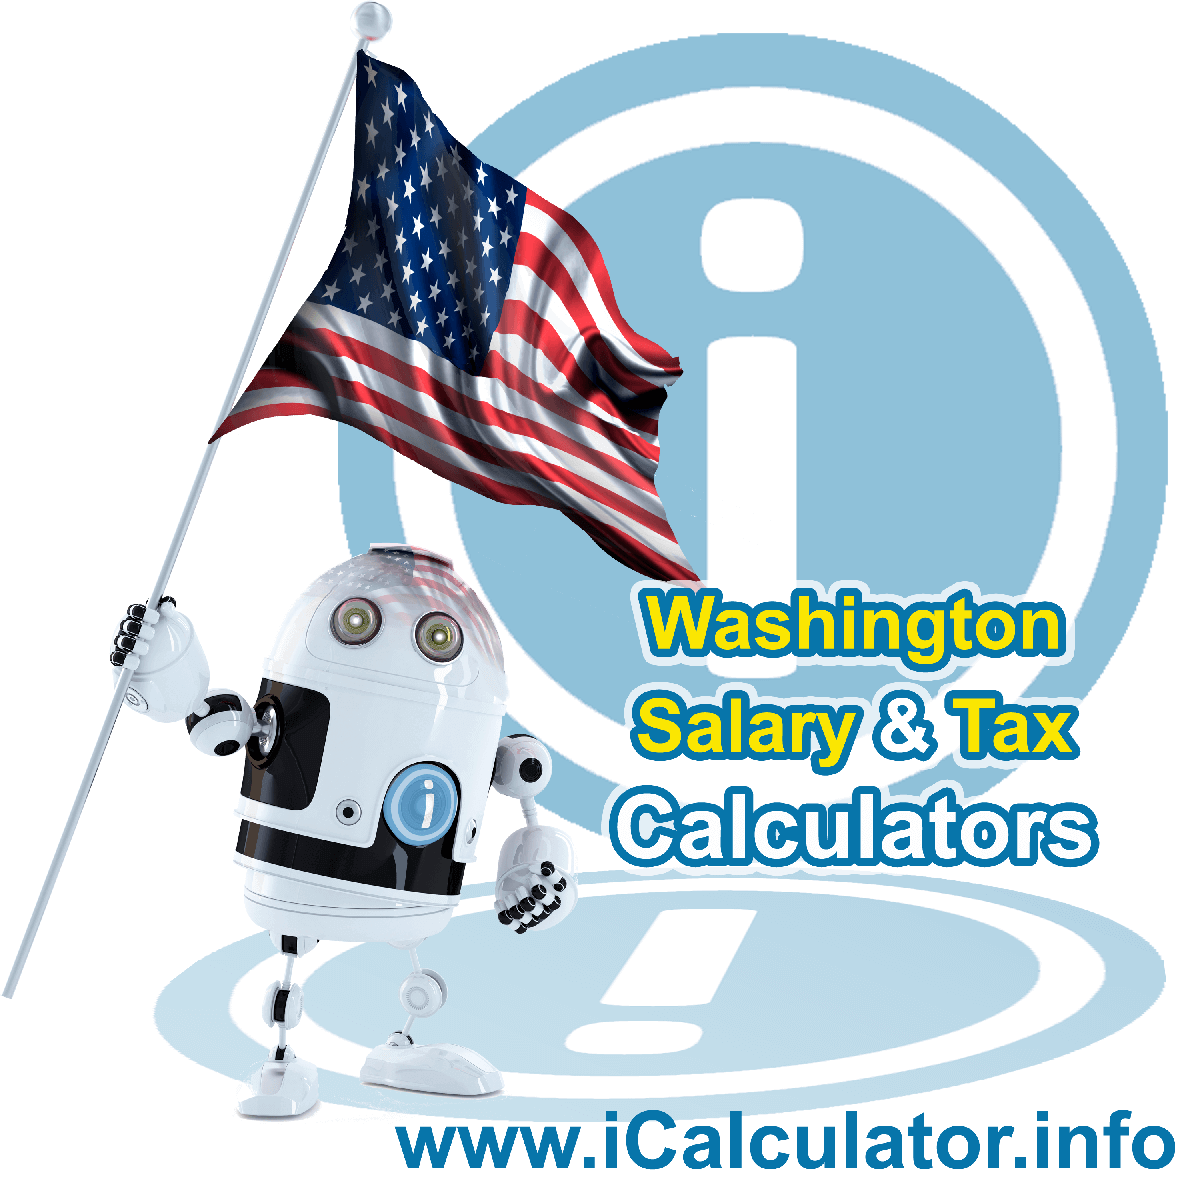 Washington Salary Calculator 2019 | iCalculator | The Washington Salary Calculator allows you to quickly calculate your salary after tax including Washington State Tax, Federal State Tax, Medicare Deductions, Social Security, Capital Gains and other income tax and salary deductions complete with supporting Washington state tax tables